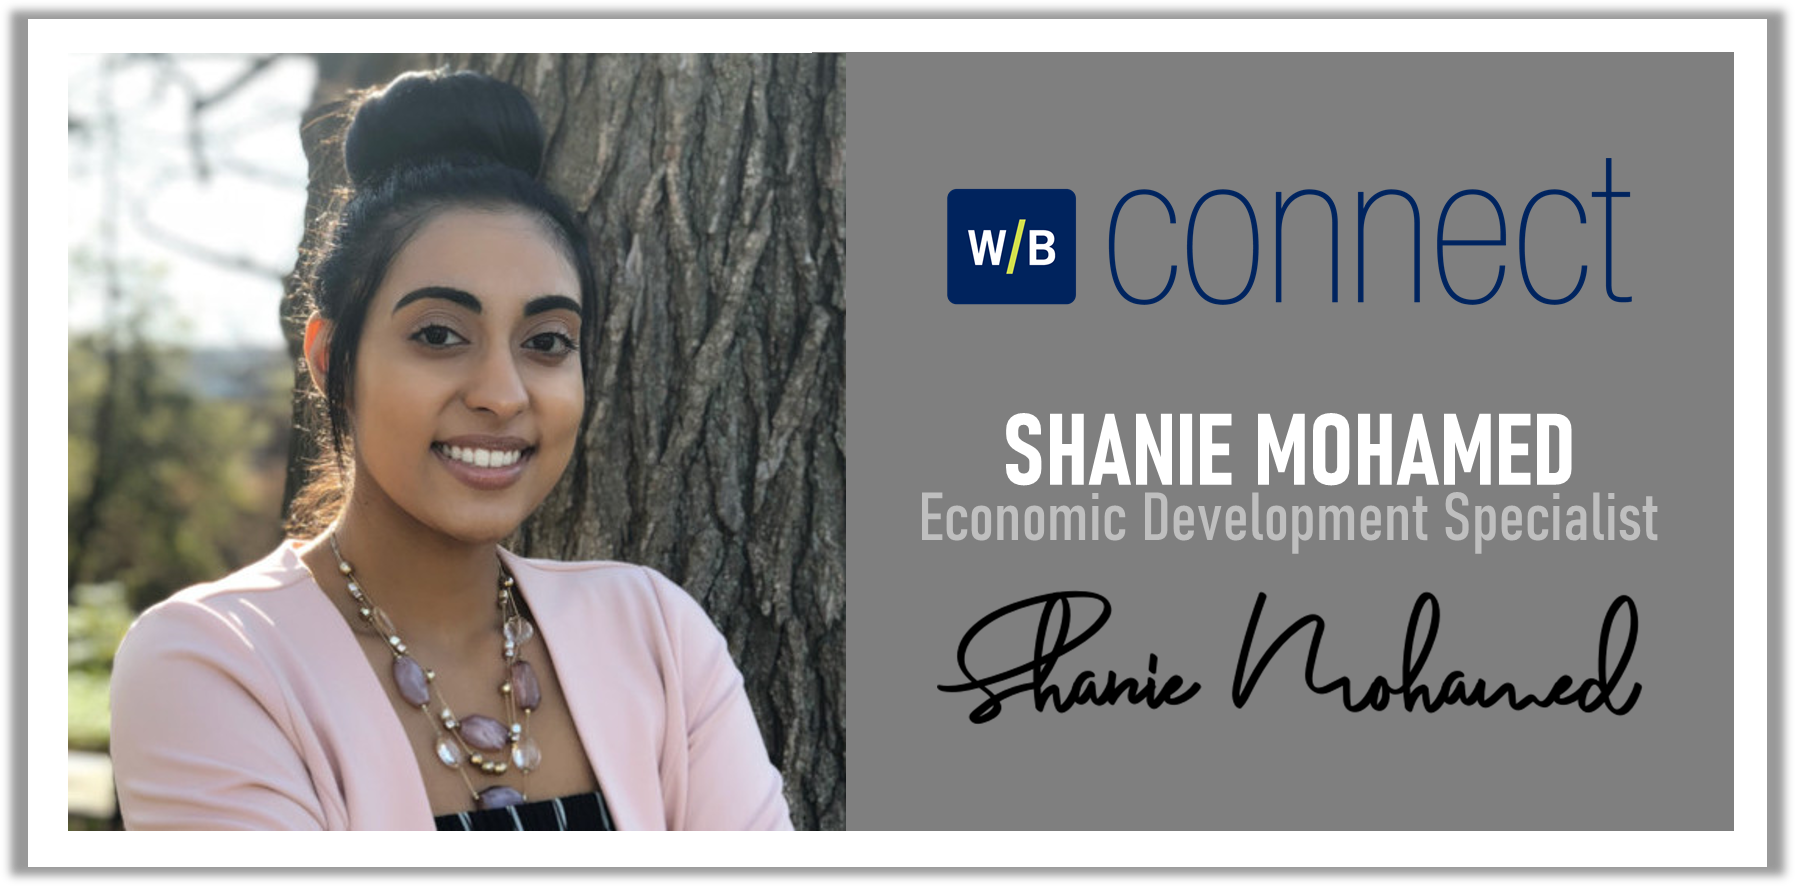 Meet Shanie, Wilkes-Barre Connect's New Economic Development Specialist